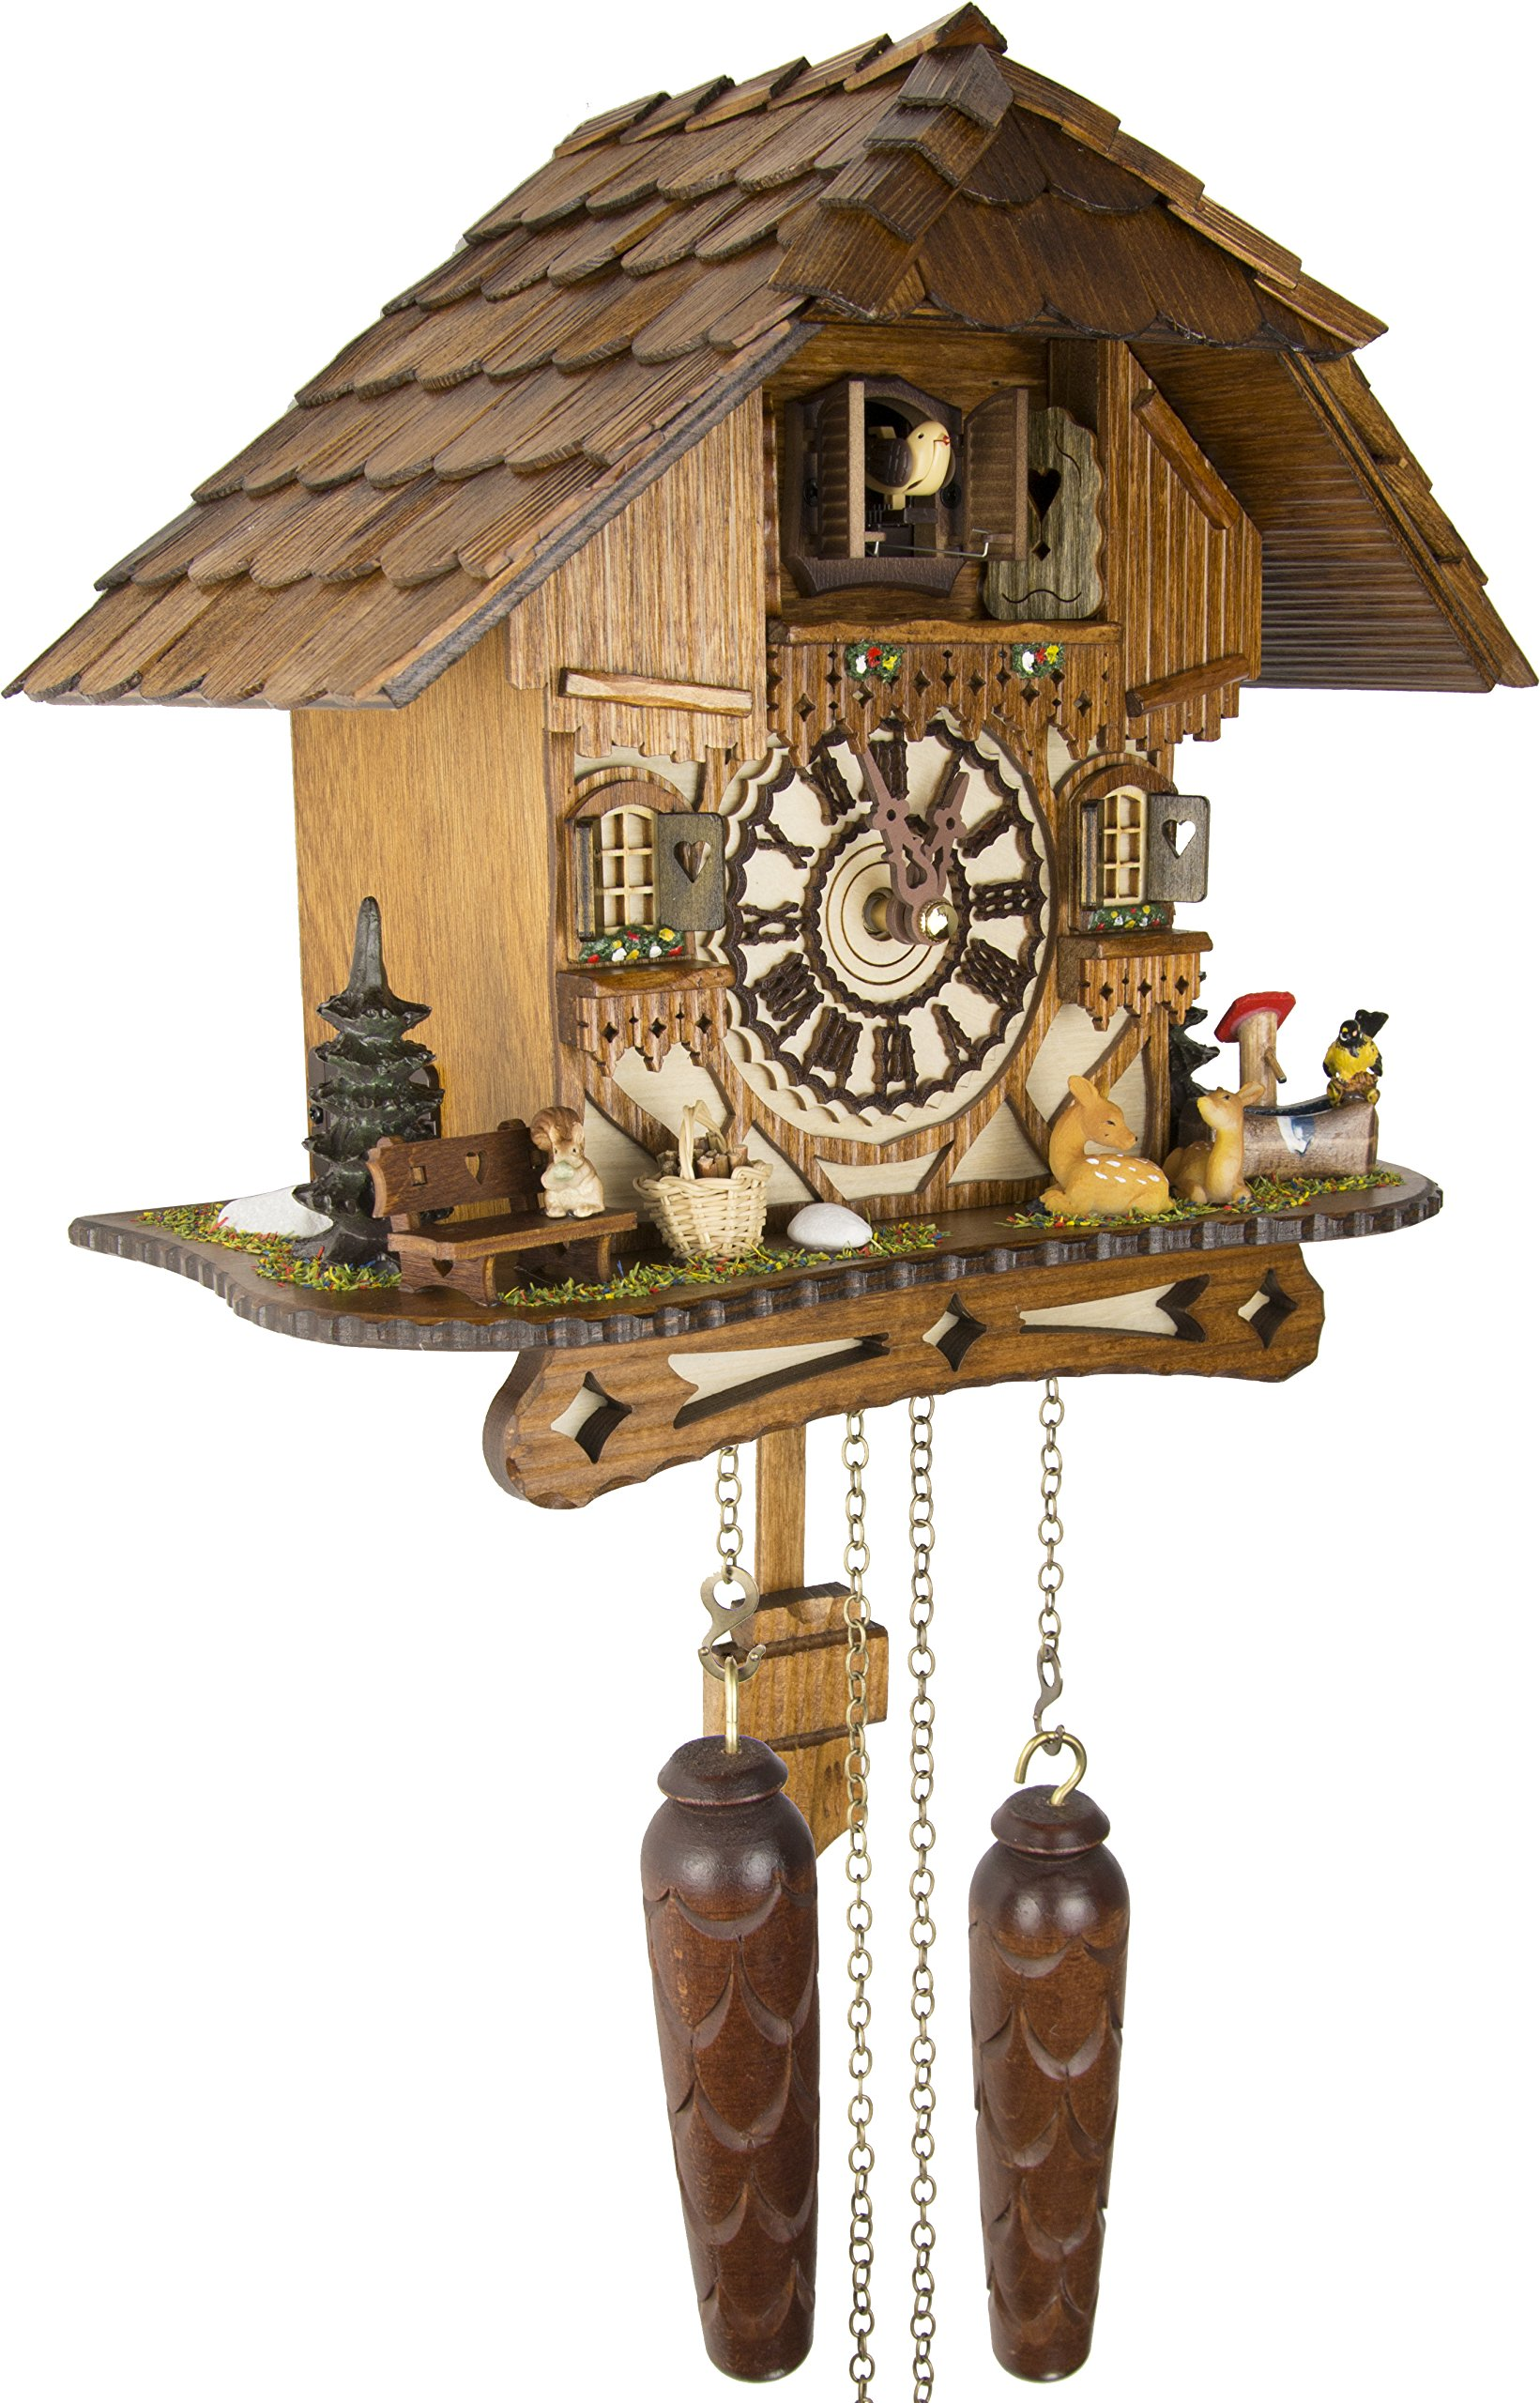 German Cuckoo Clock - Blackforest Hillside Chalet with wonderful animals - BY CUCKOO-PALACE with quartz movement - 10 1/4 inches height by Cuckoo-Palace (Image #2)